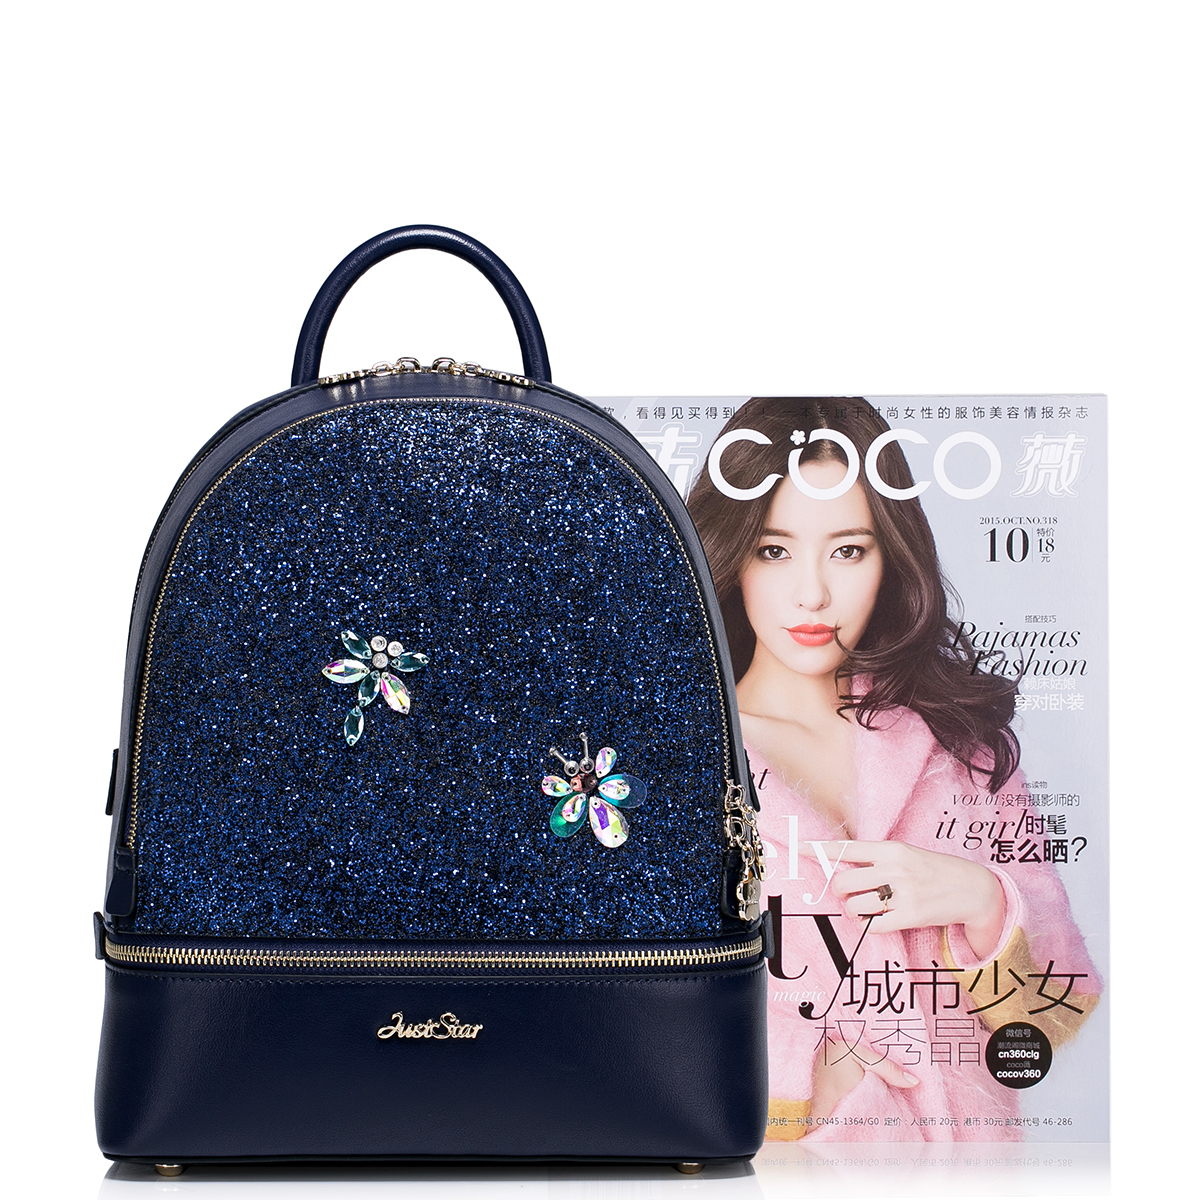 JUST STAR PU Leather 2016 Autumn Shinning Decoration Cute Backpack Blue df7b684d3adfc